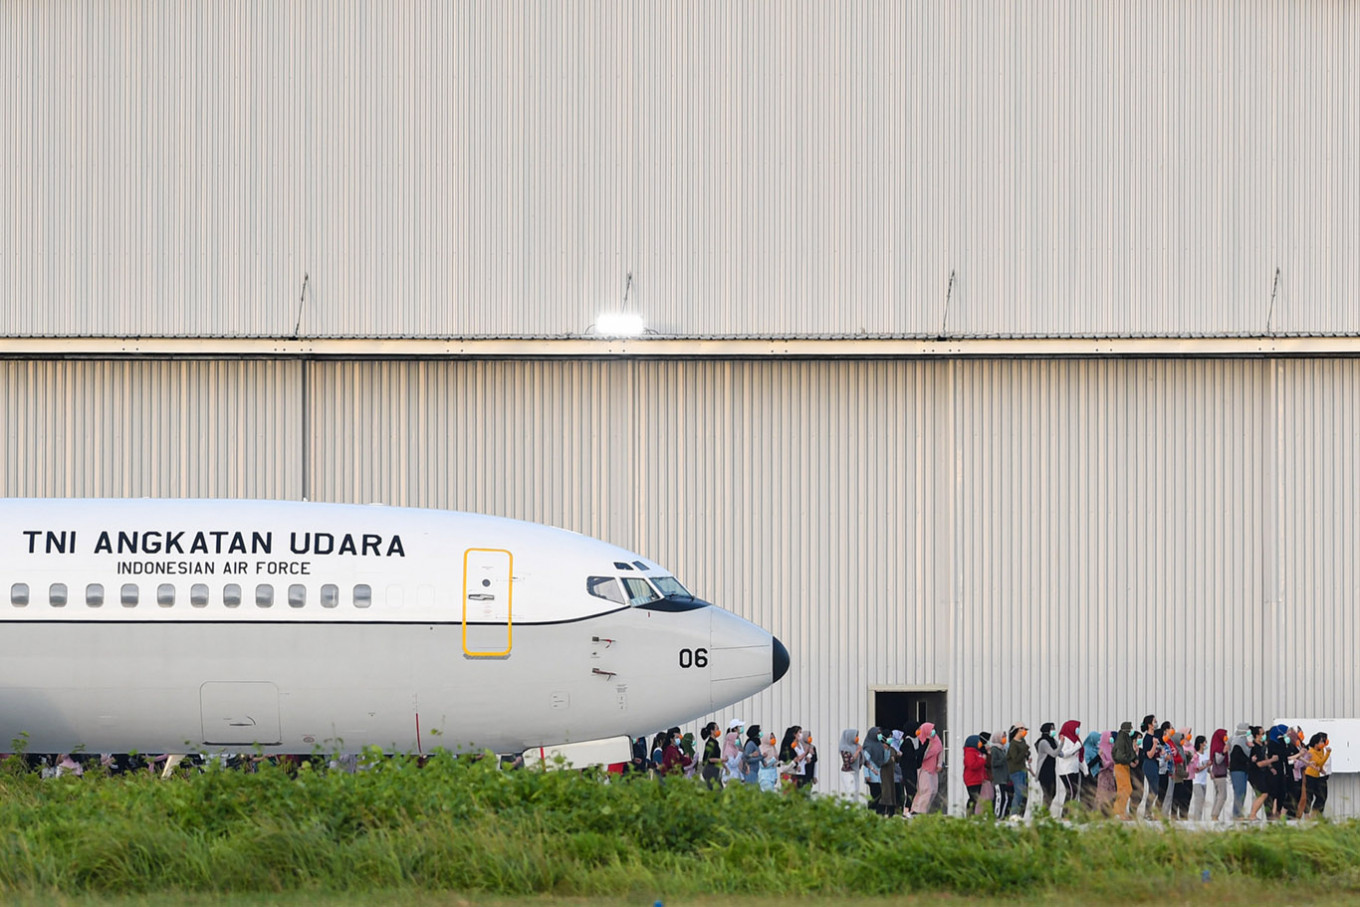 Govt looks for free flights to transport quarantined citizens from Natuna to home towns